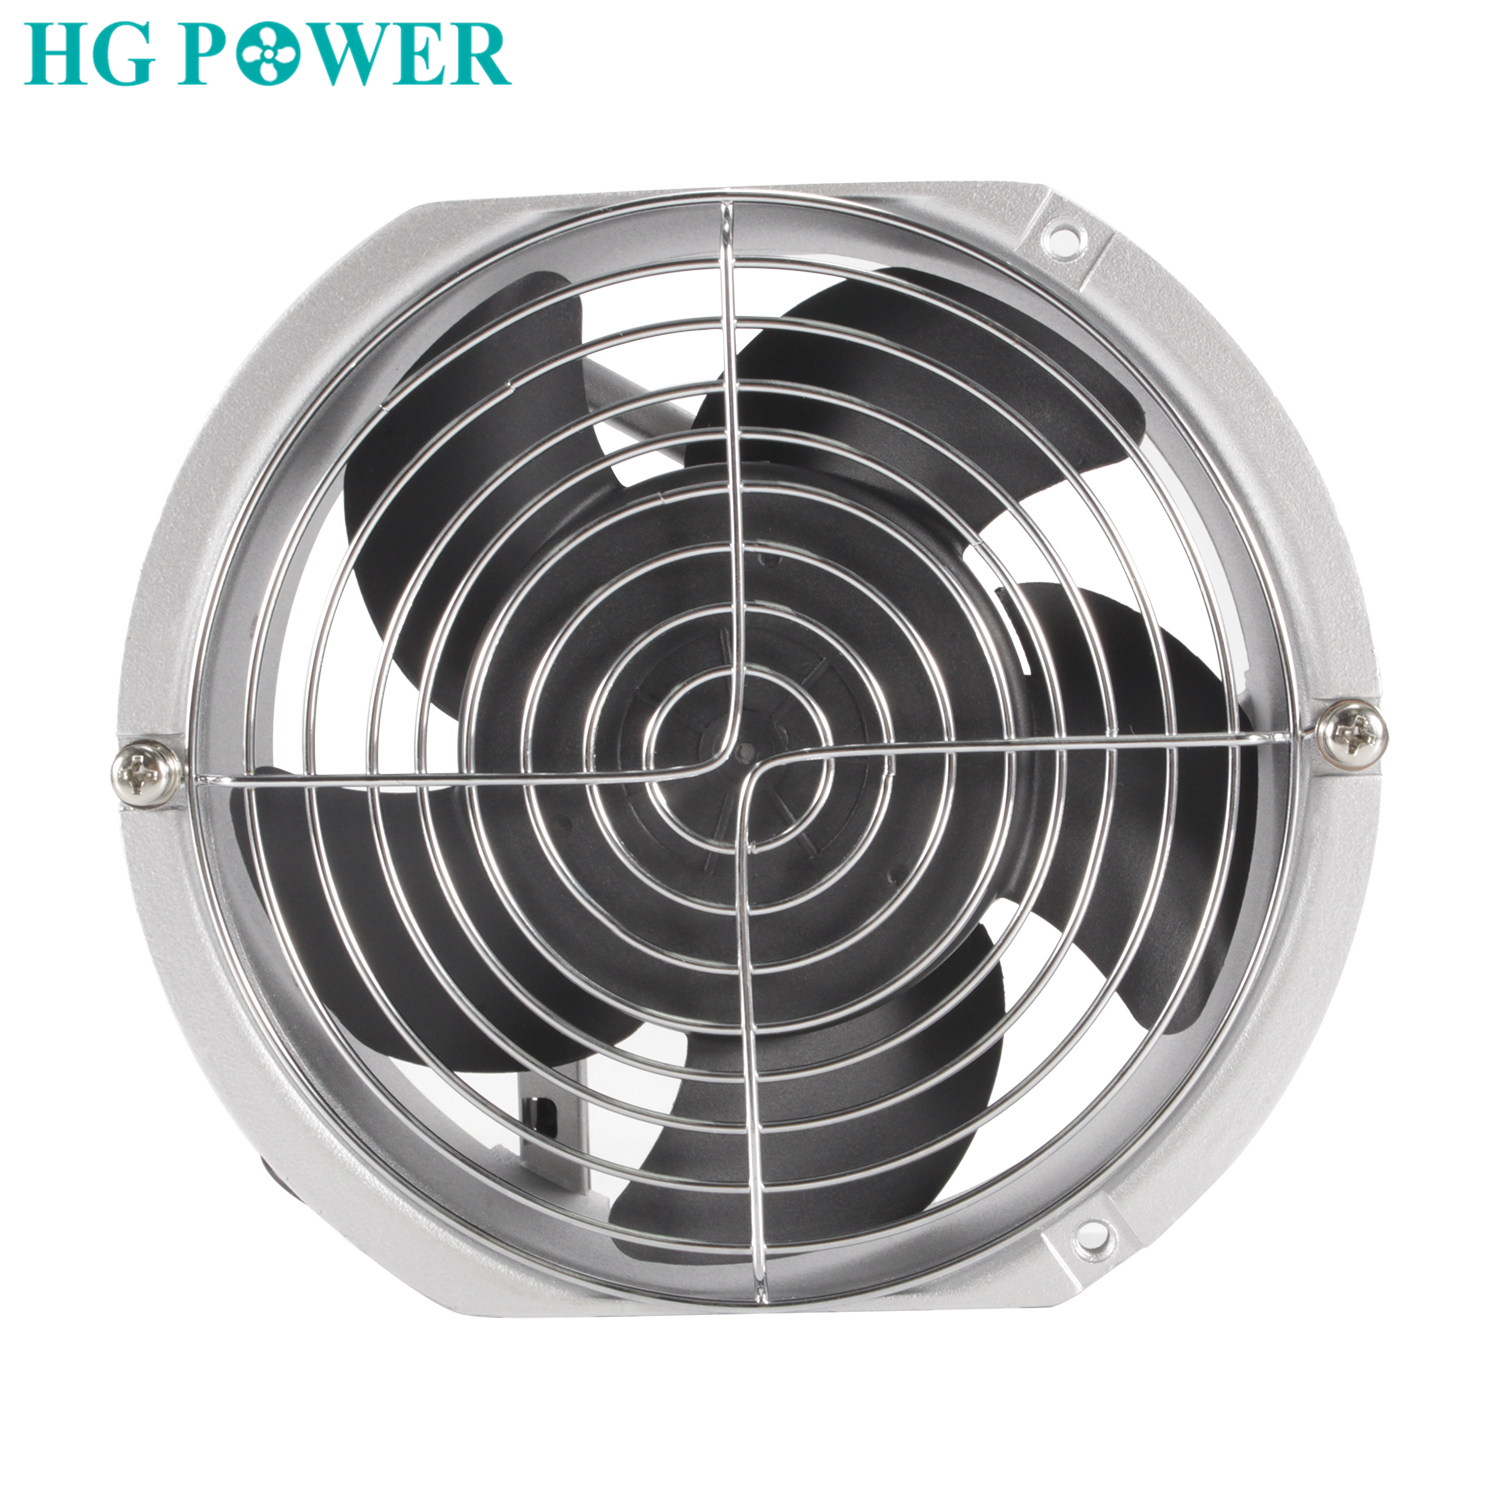 Waterproof Cooling Fan 220V 110V AC 17251 Supercharged Industrial Fan Refrigerator Plastic Freezer Cabinet Cooler Axial Fan Home